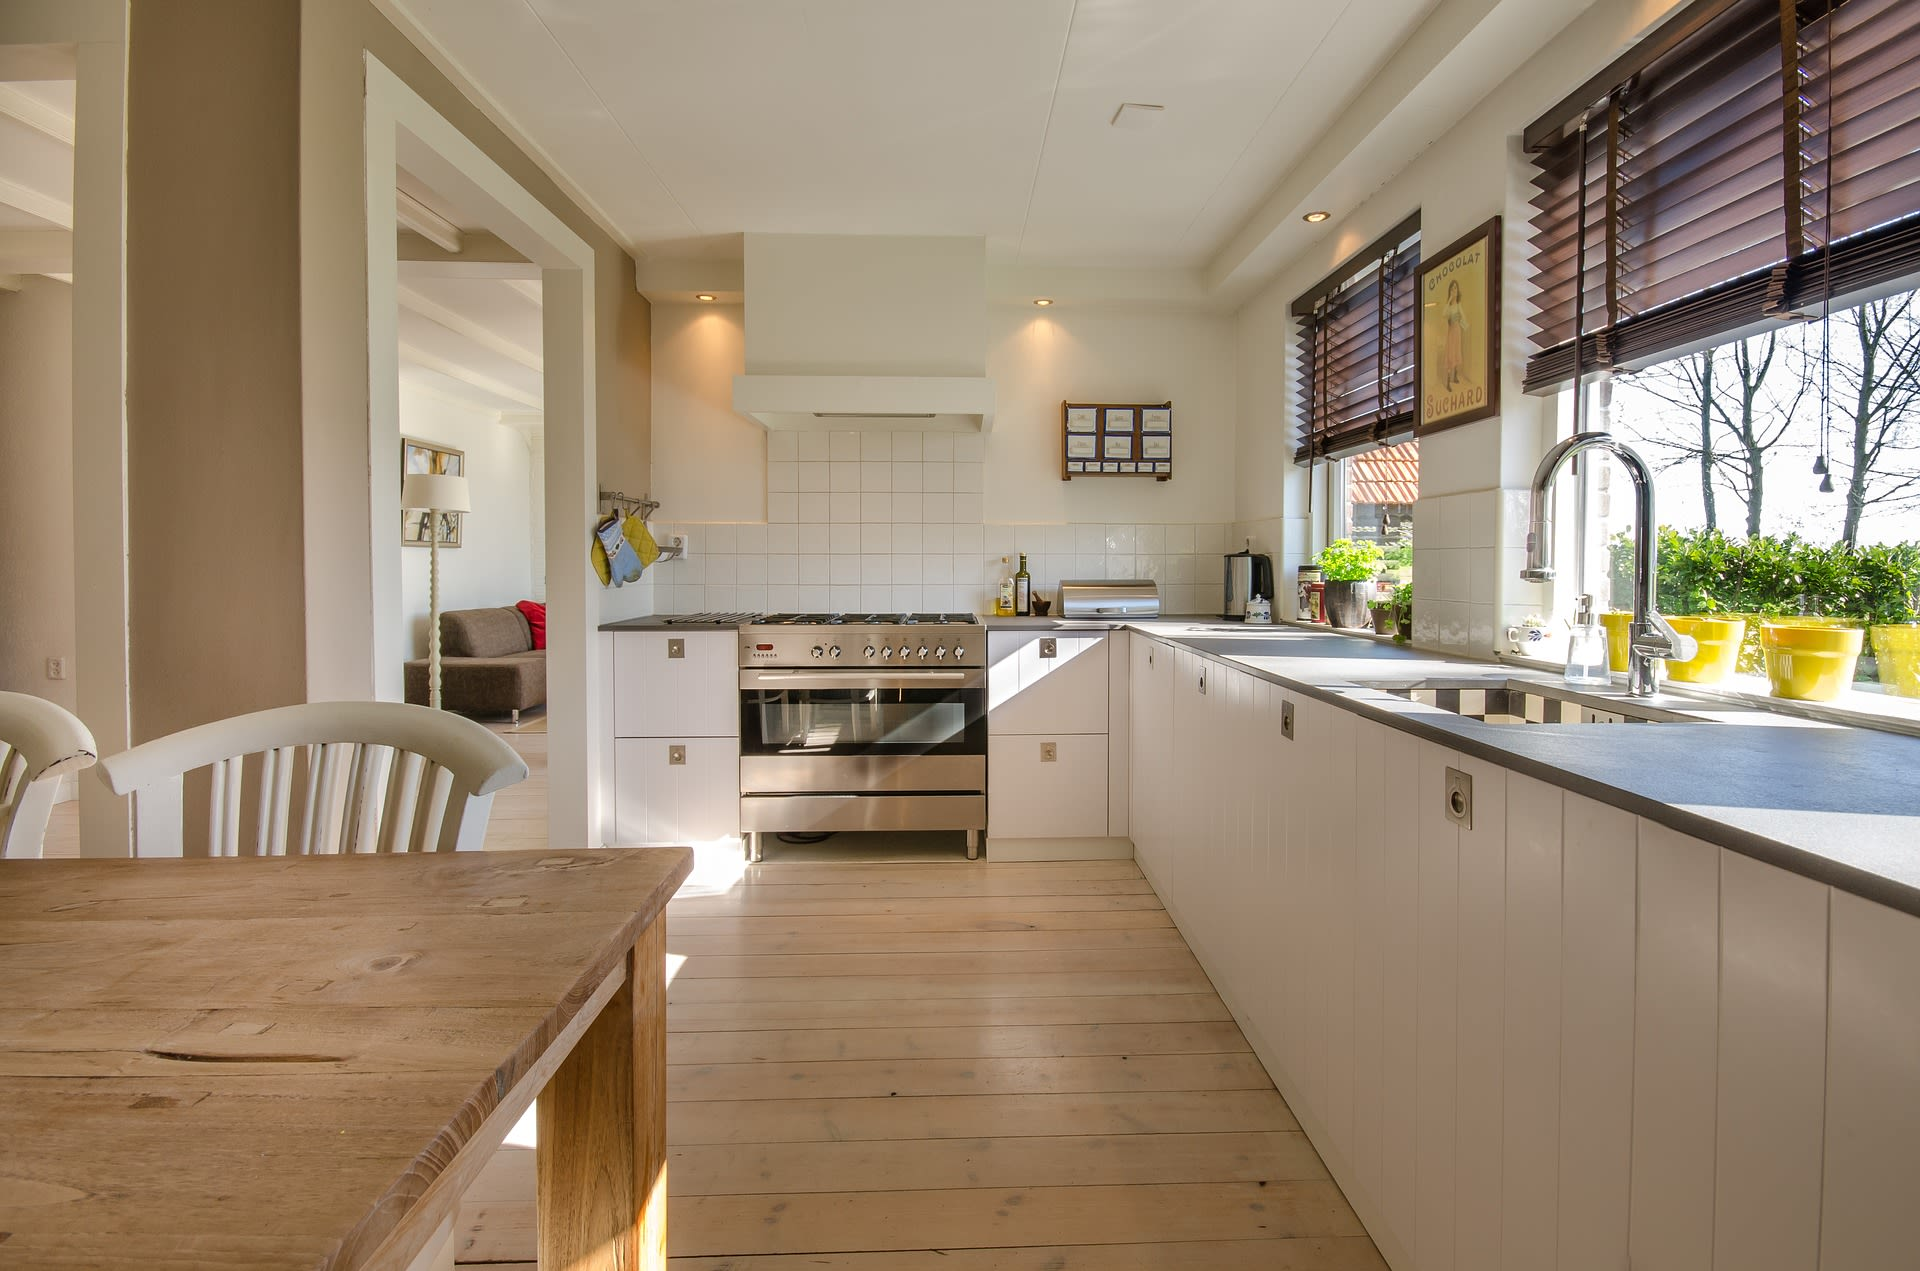 Make The Most Of Your Montclair Kitchen Space! 7 Time-tested Organizing Tips